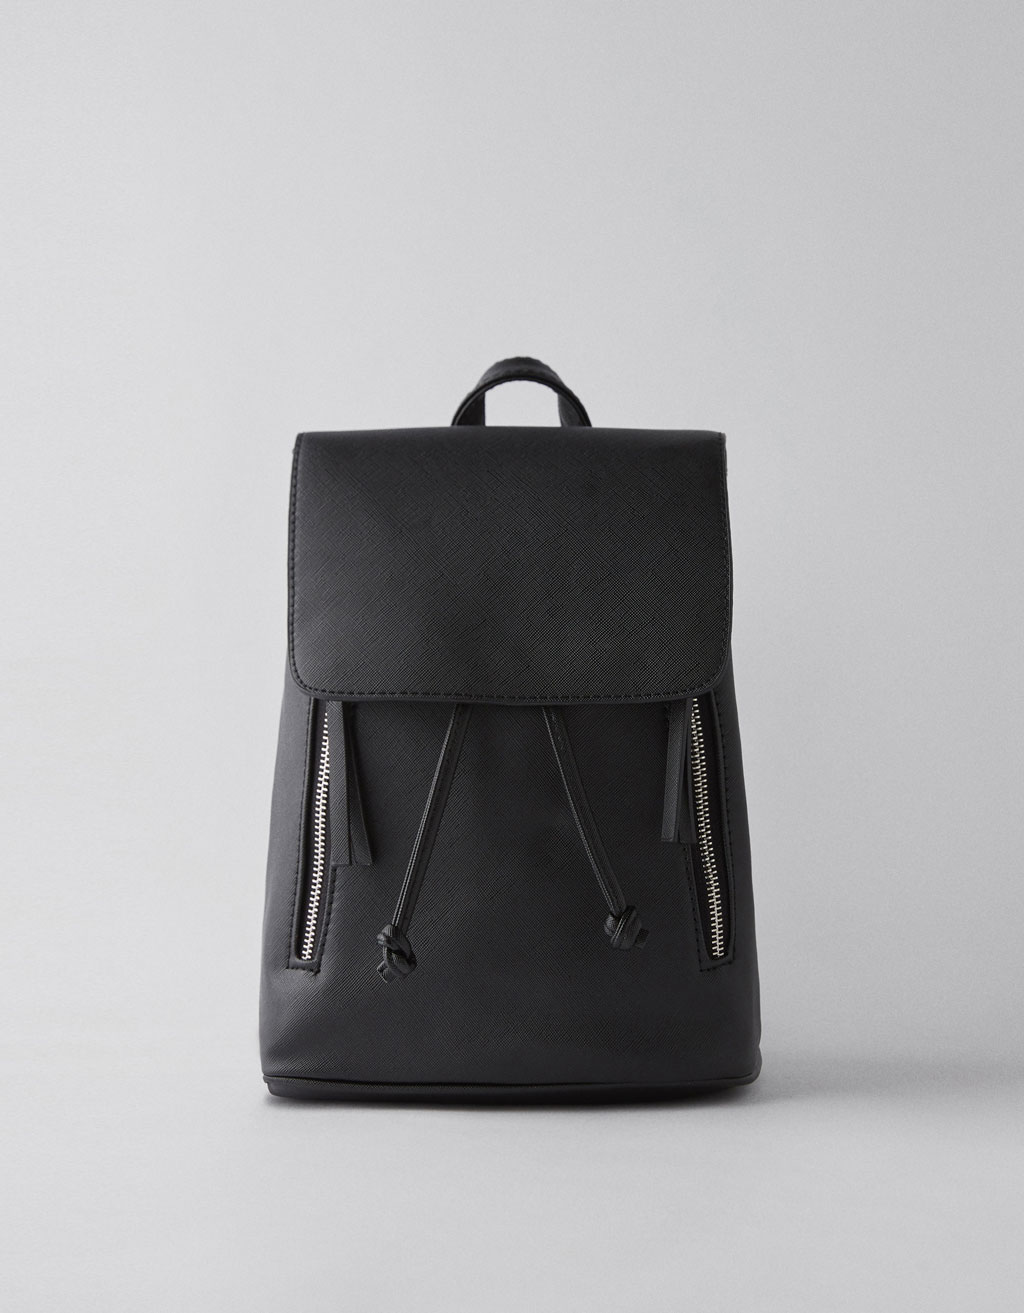 Faux leather backpack with two zippers